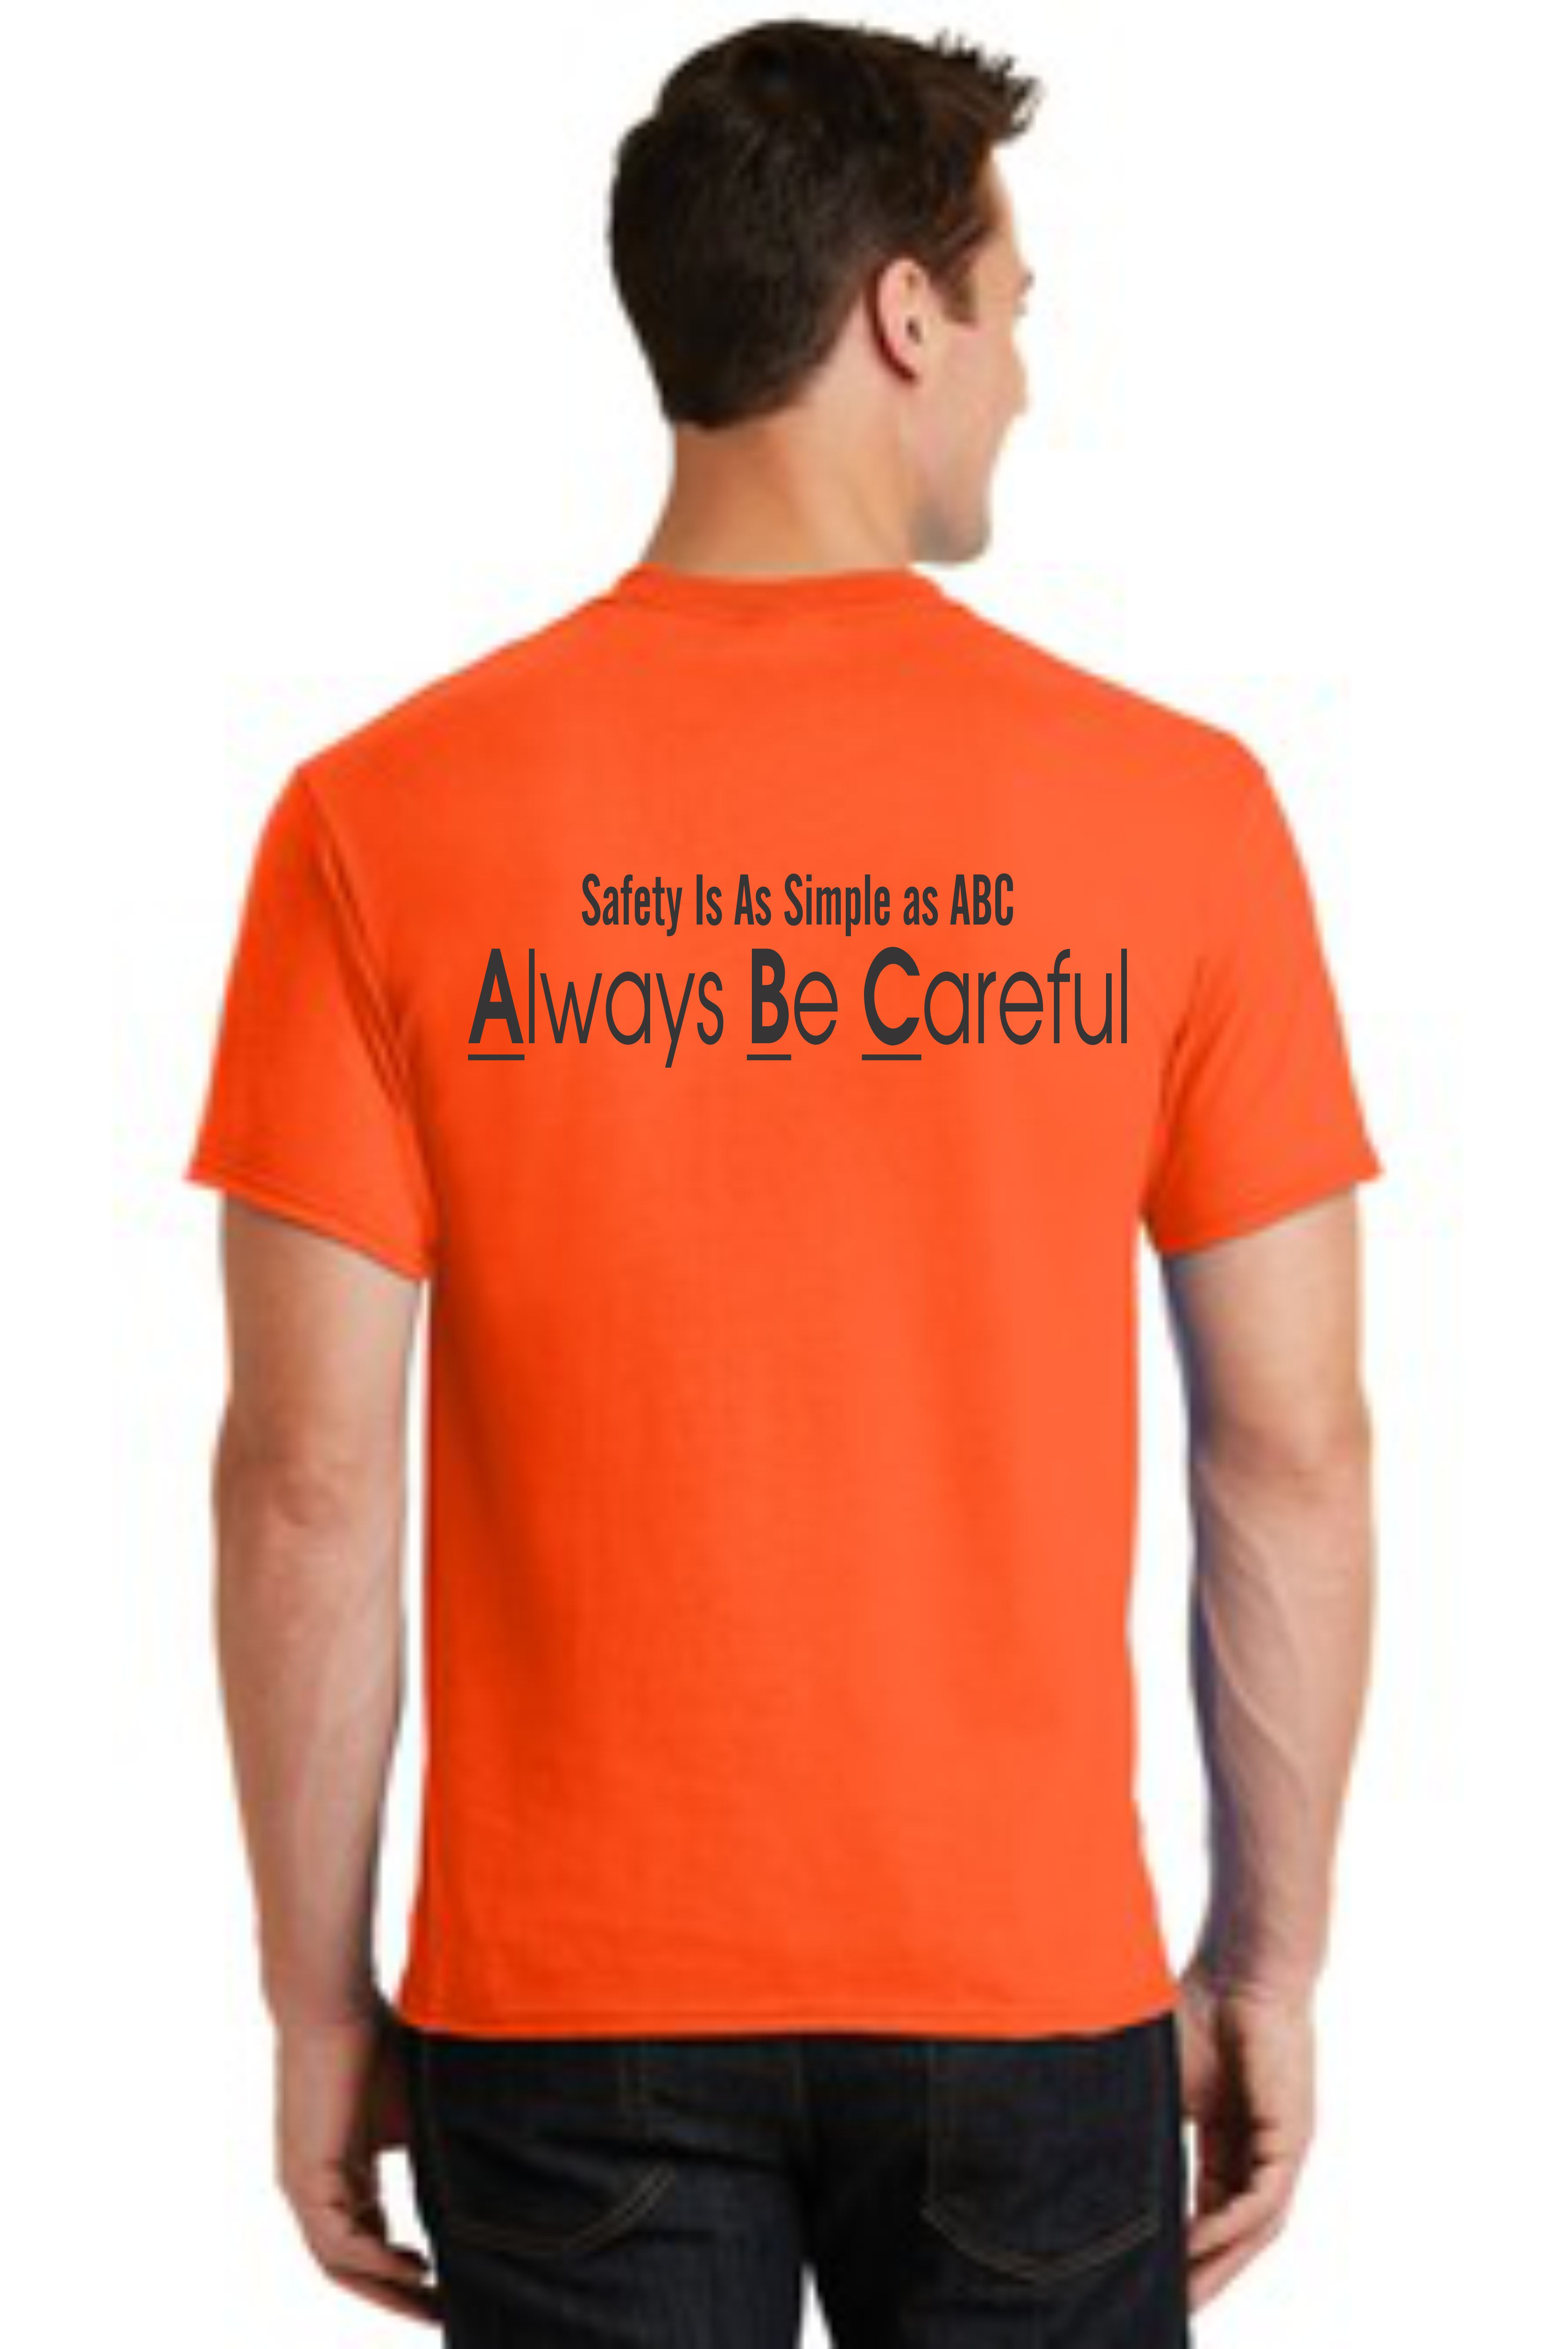 SAFETY T-SHIRT -- ABC